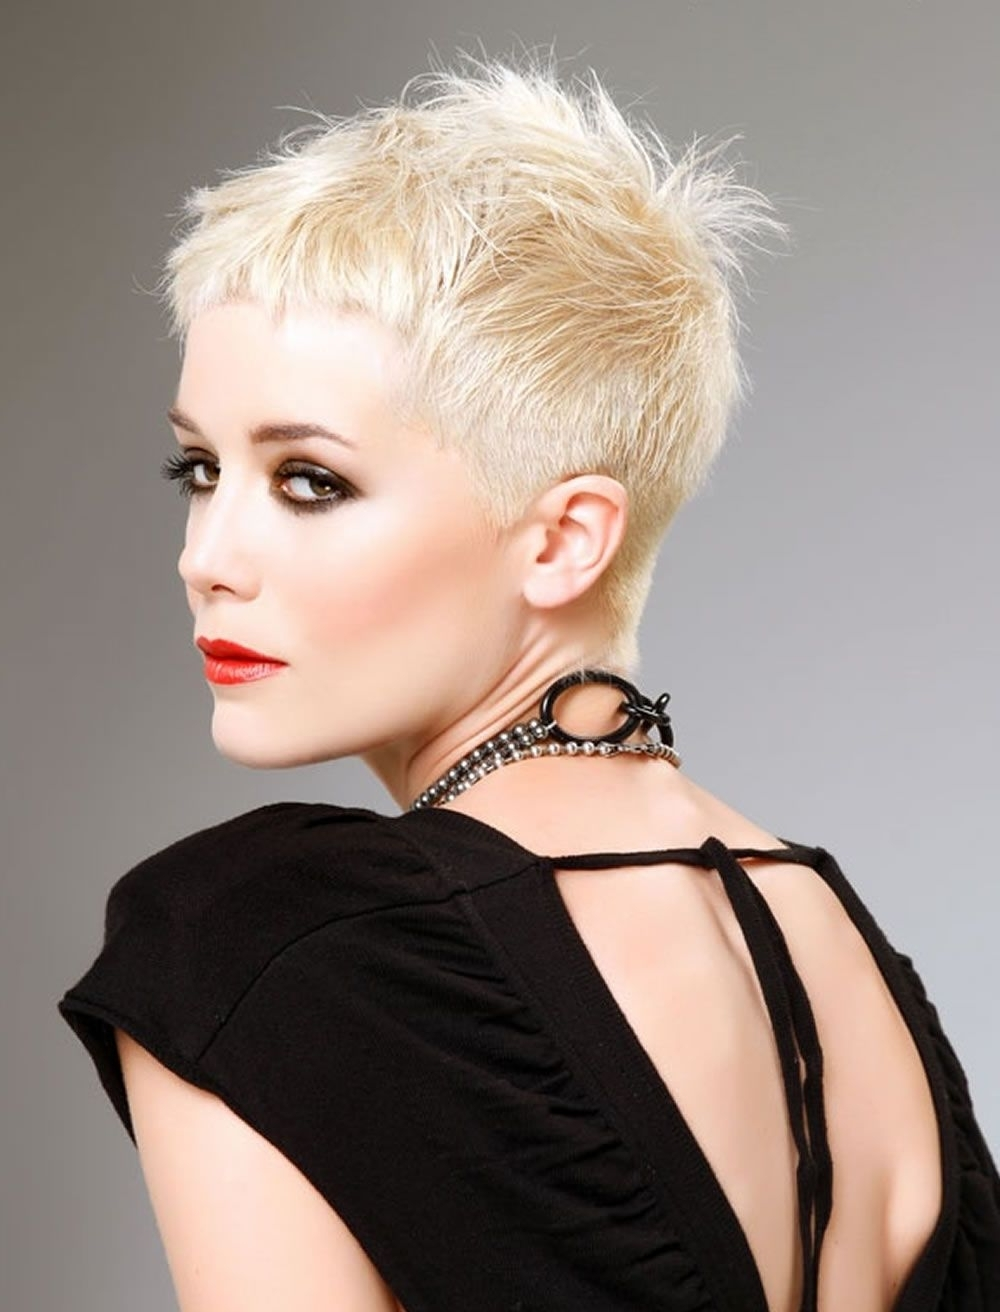 2018 Very Short Pixie Hairstyles & Haircuts Inspiration Throughout Most Current Short Blonde Pixie Hairstyles (View 4 of 15)